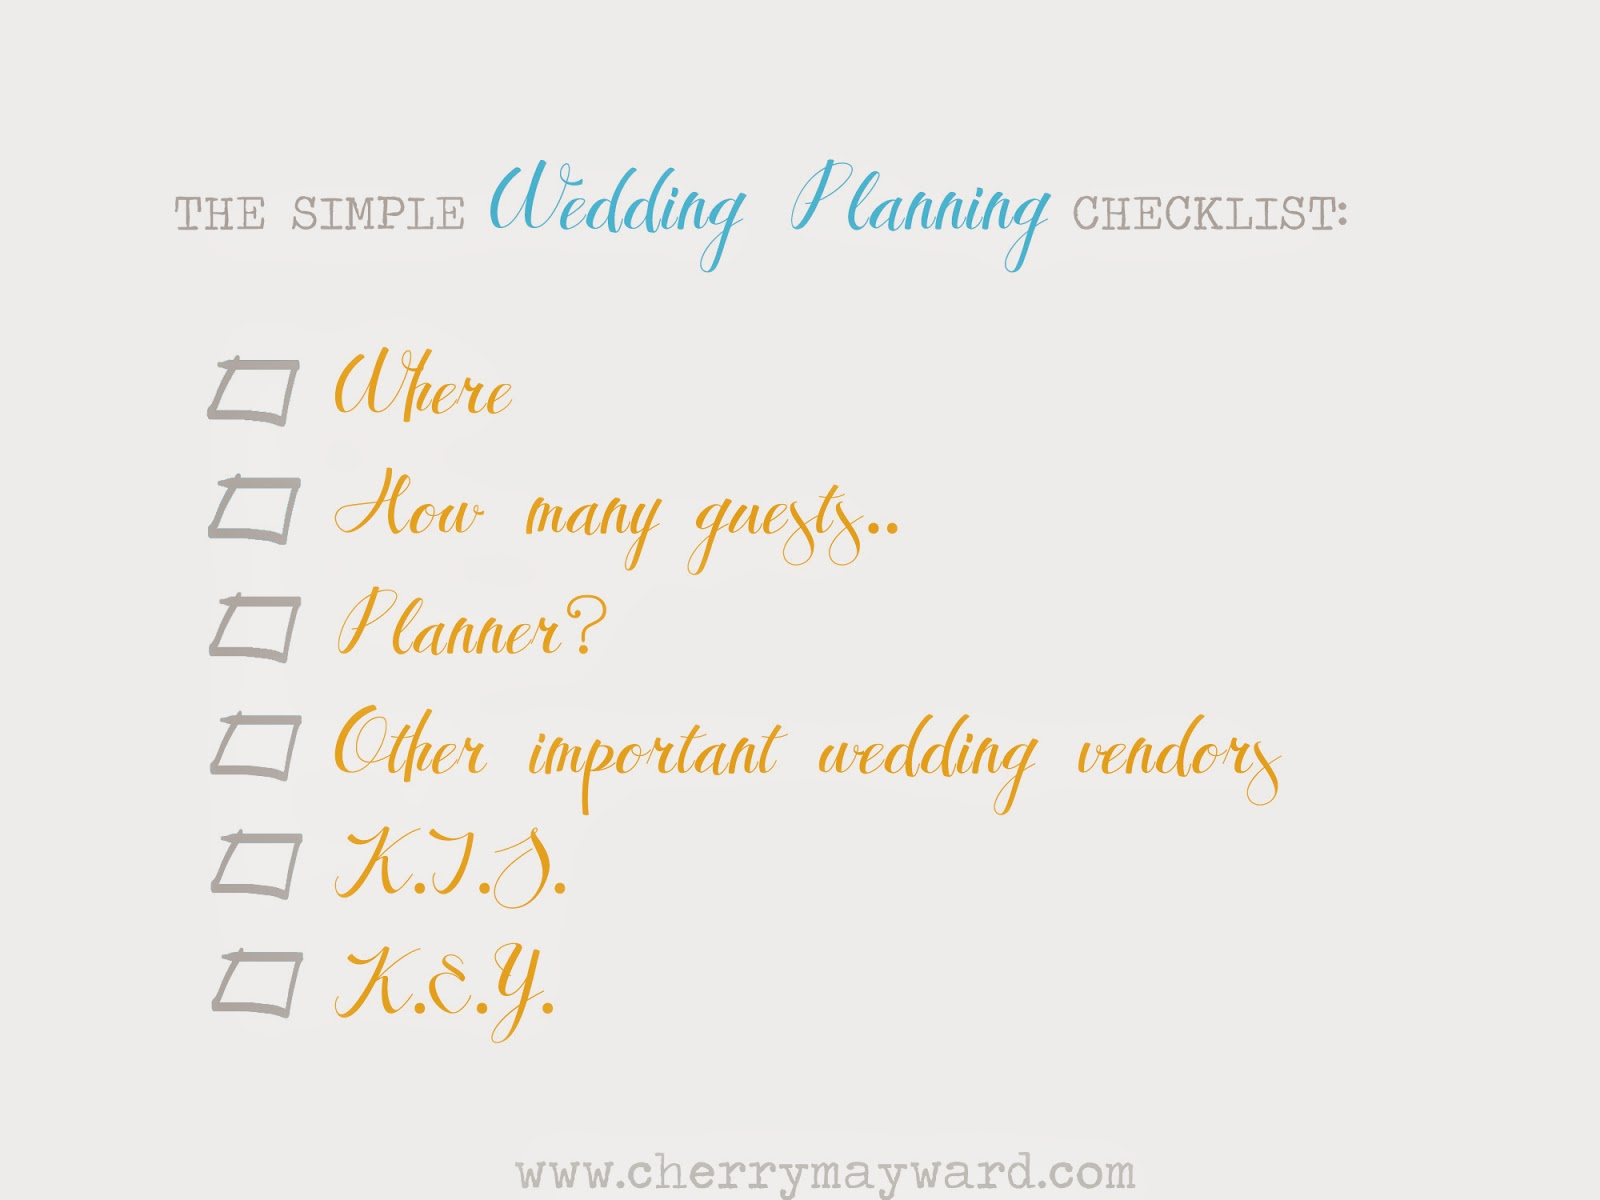 the simple wedding planning checklist, wedding planning checklist, wedding planning ideas, where to start with your wedding planning, how to make wedding planning simple and easy,